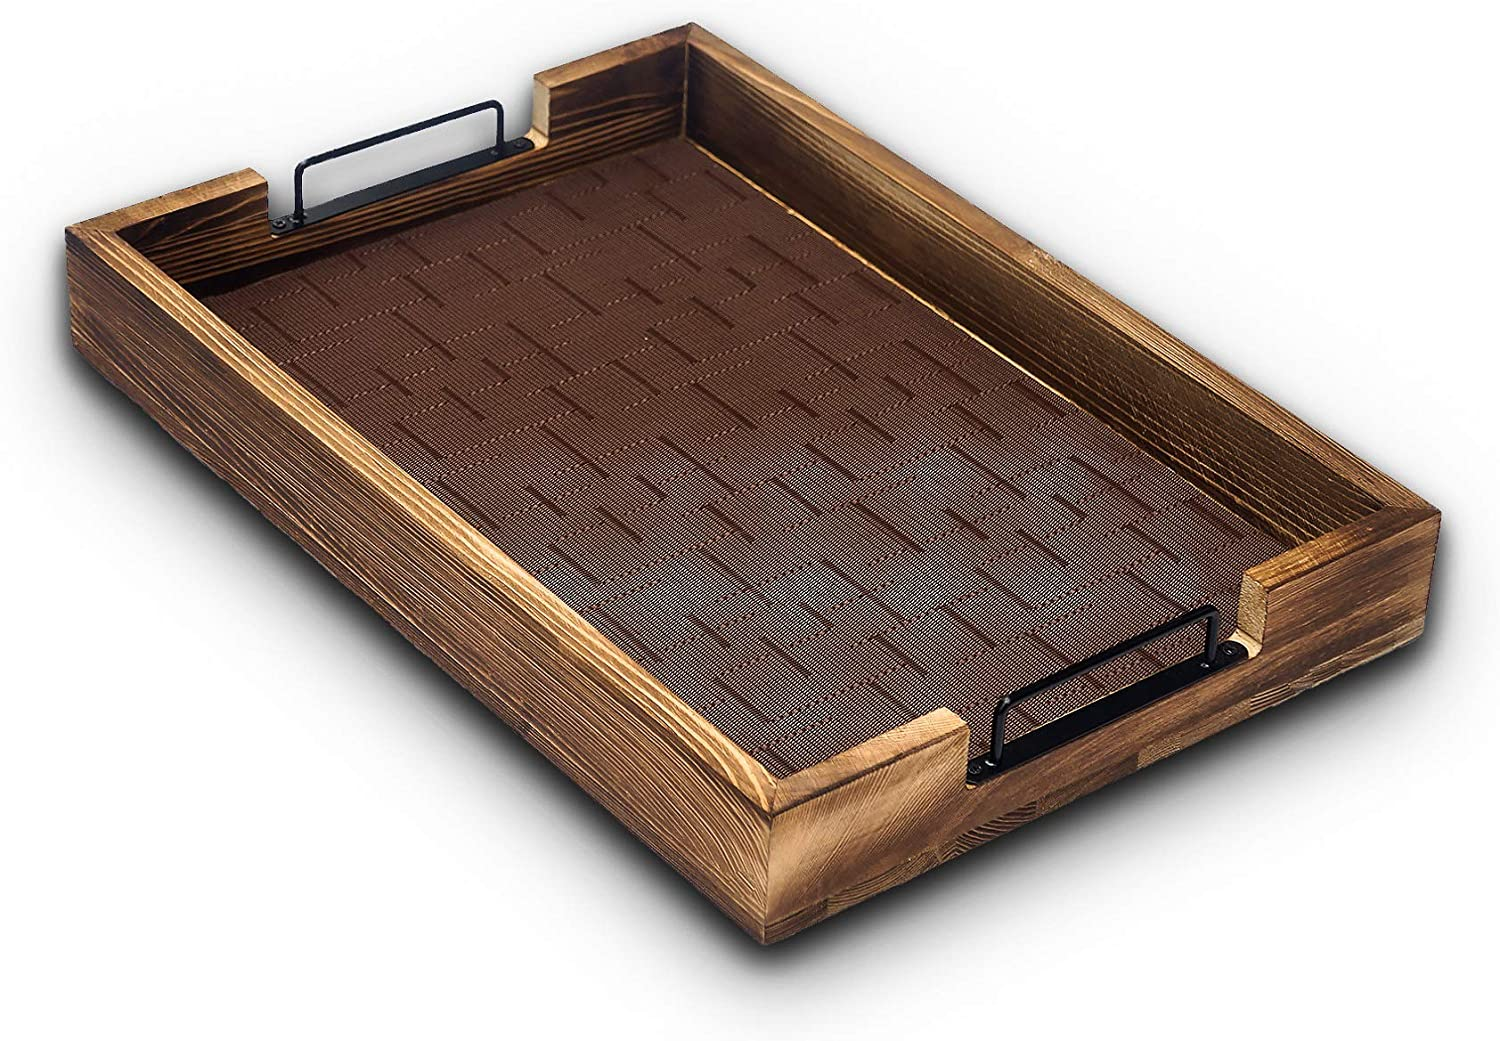 Large Rustic Wood Ottoman Tray with Washable Non Slip Serving Tray Mat & Protective Pads 19